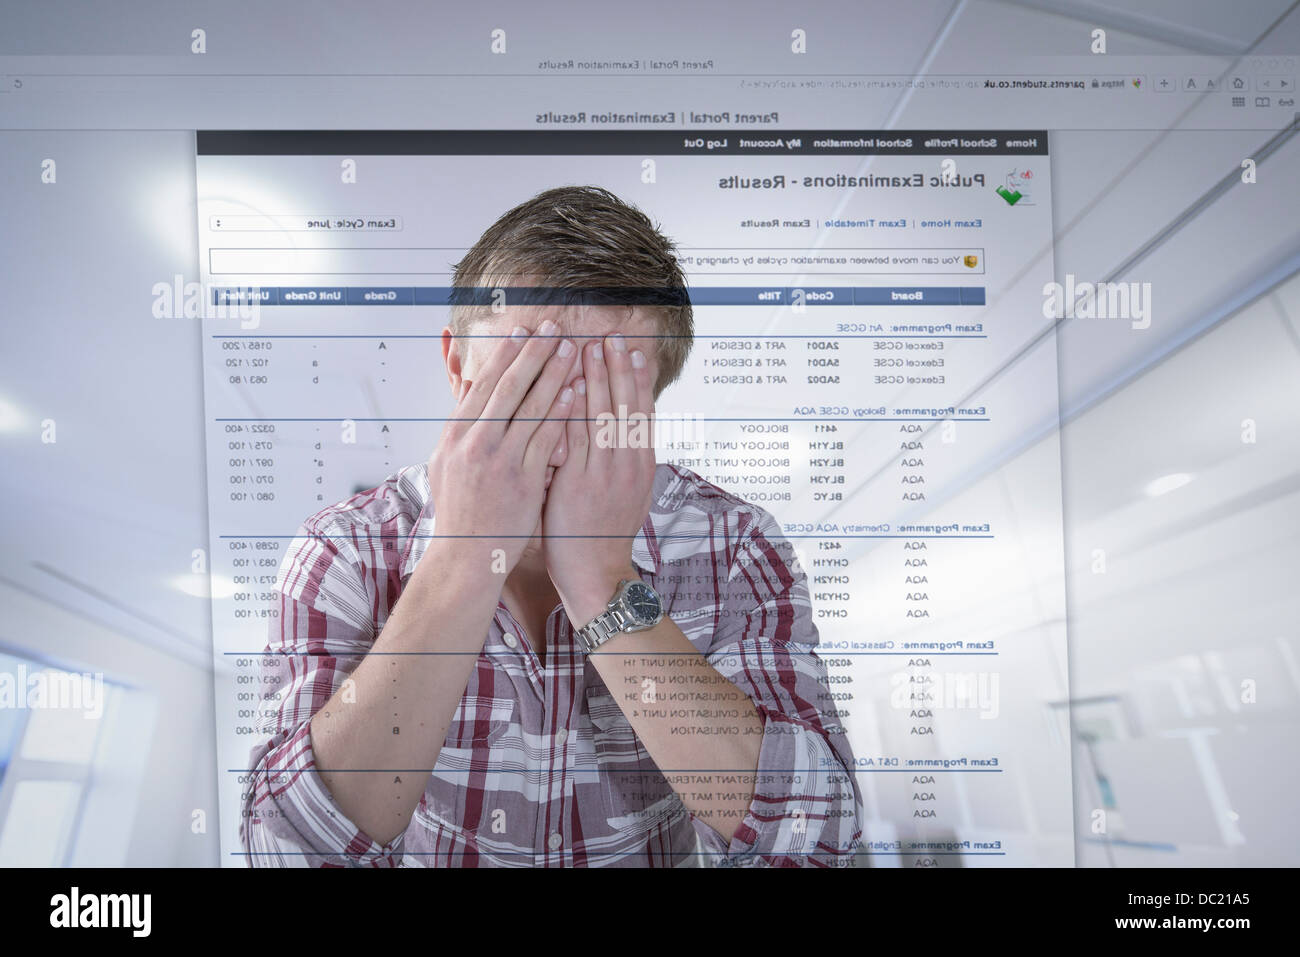 Young student reacting to examination results displayed on screen - Stock Image